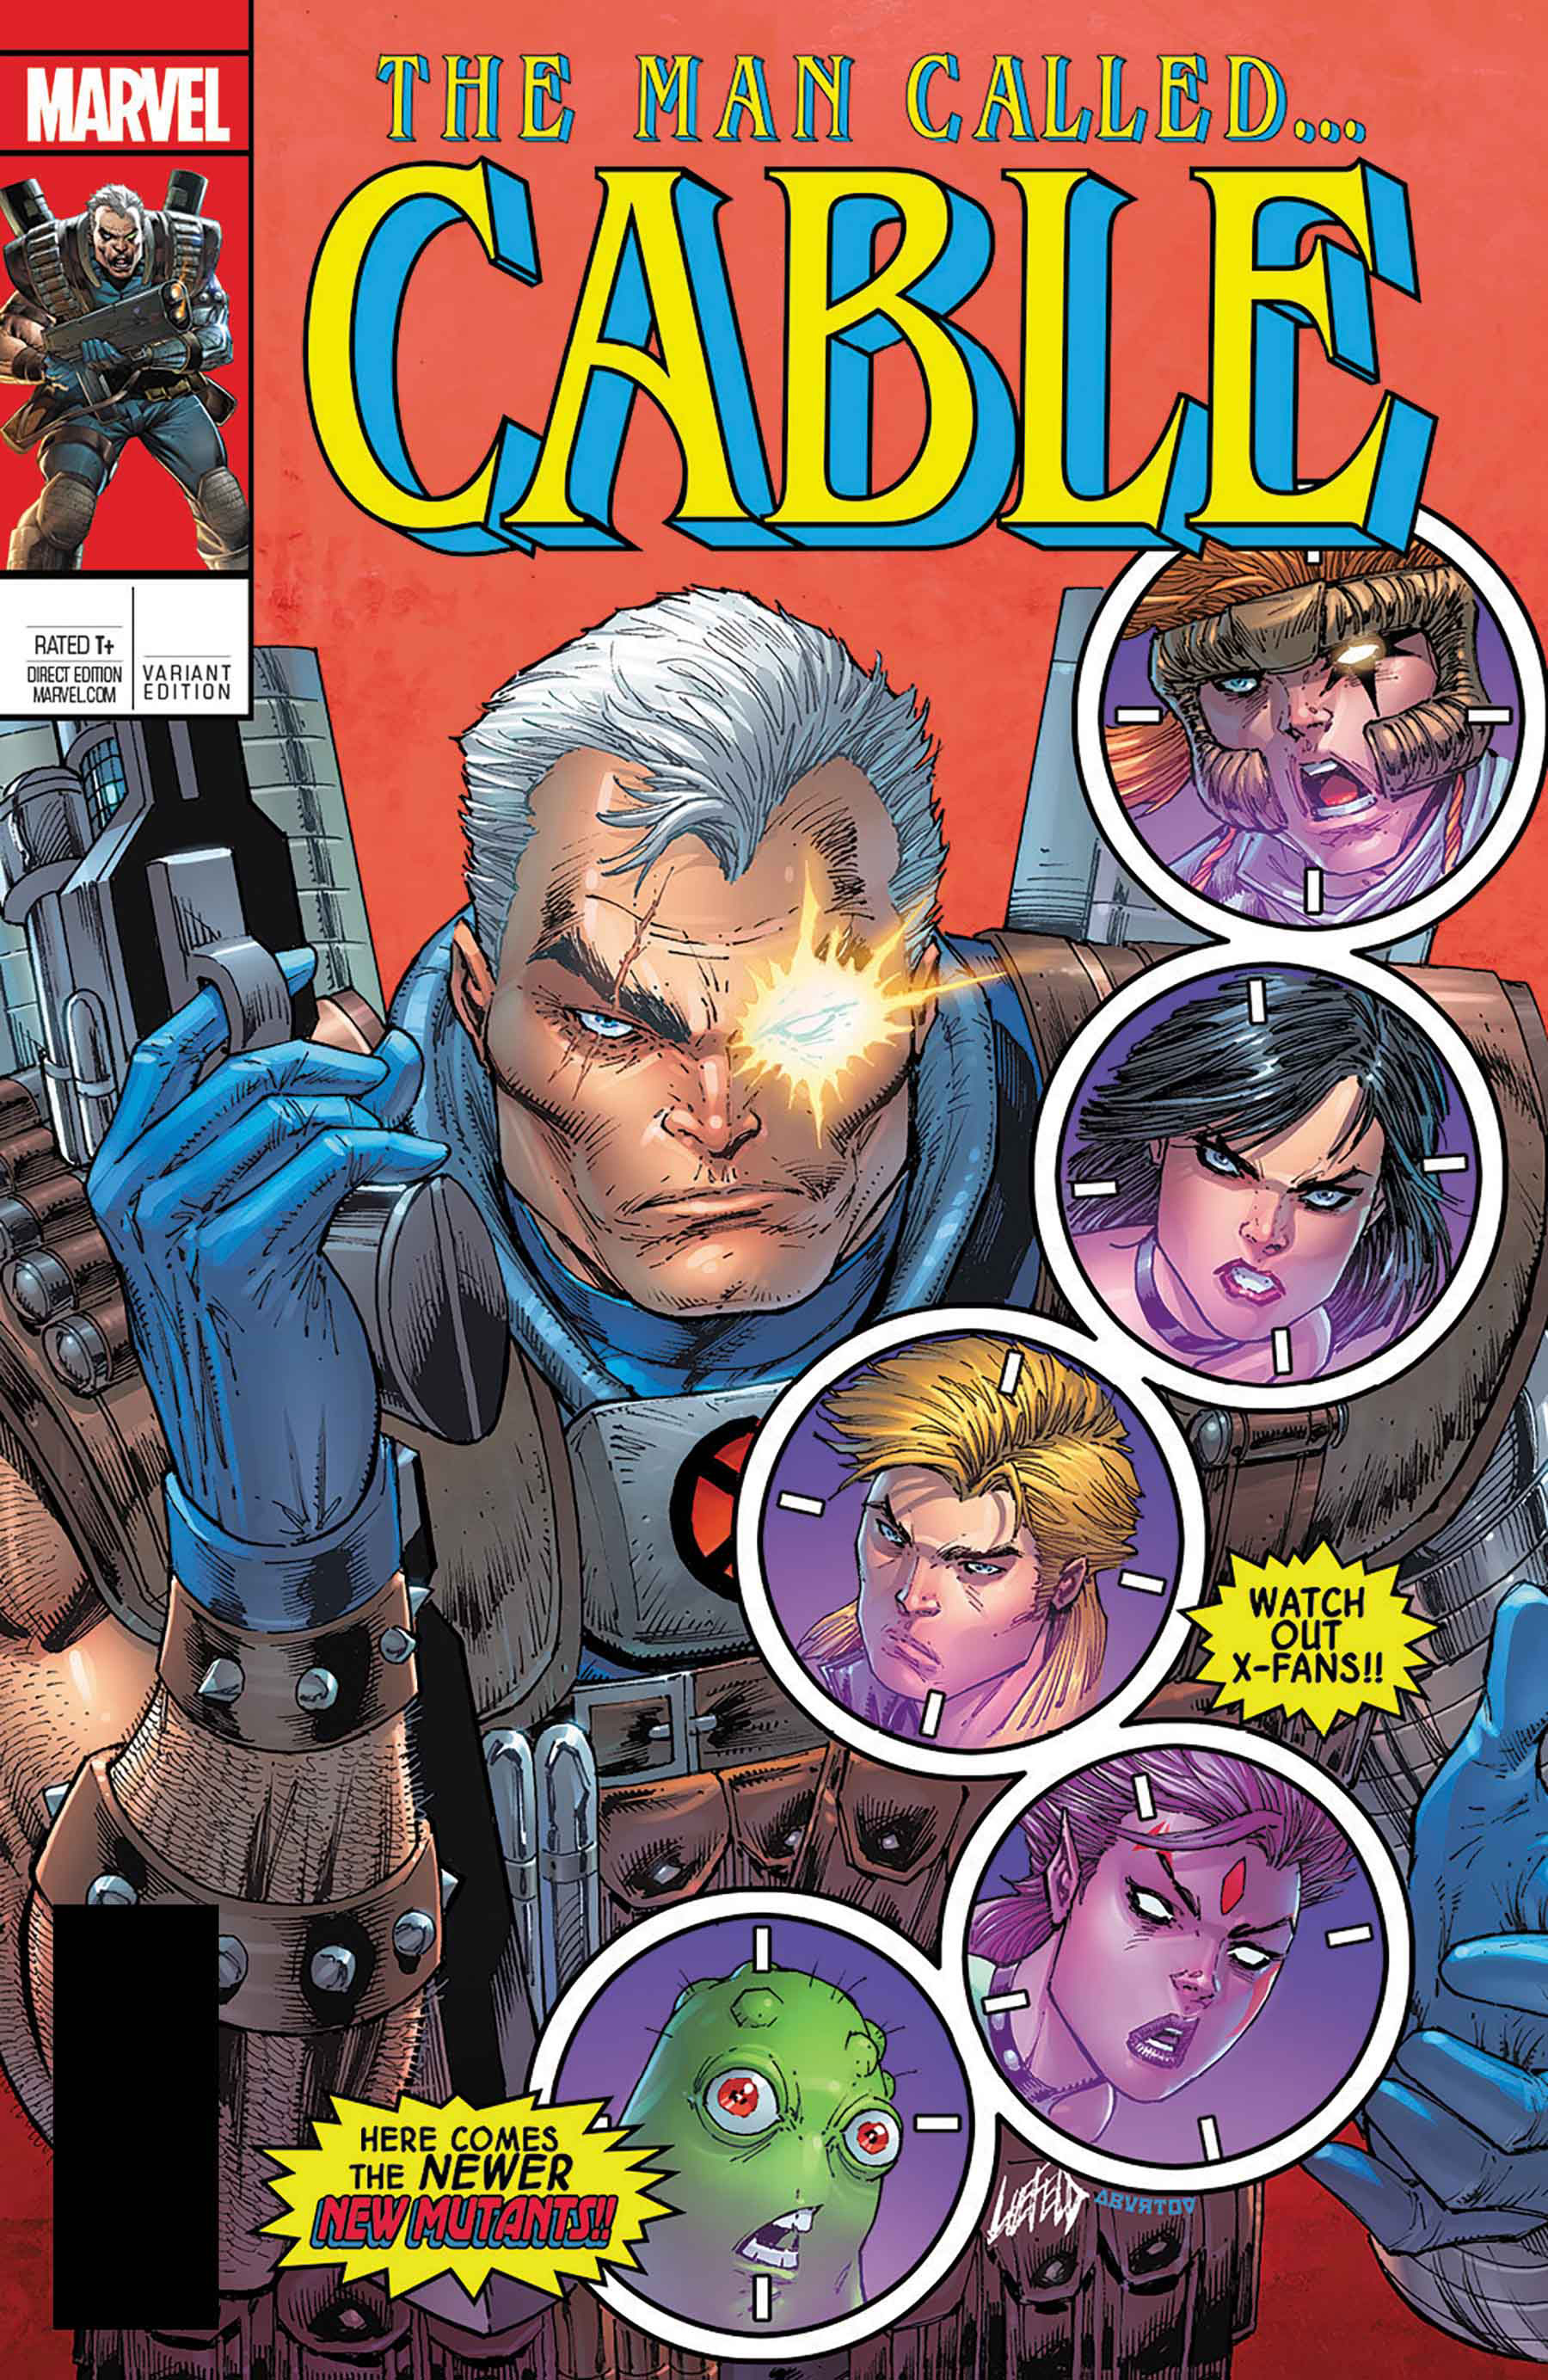 CABLE #150 VARIANT